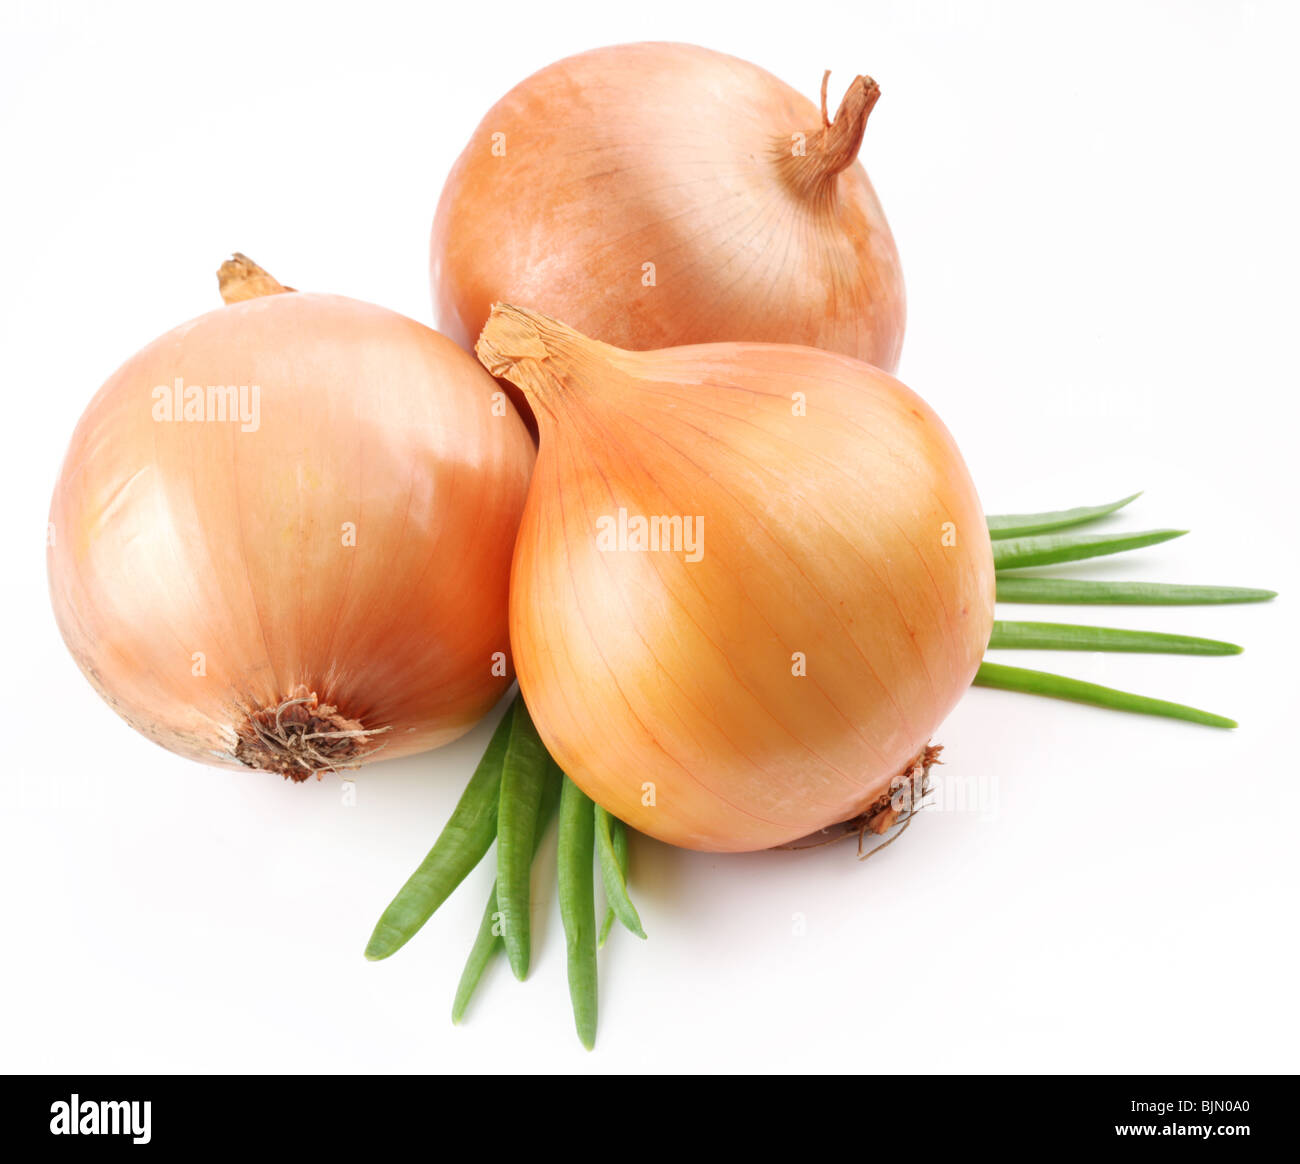 Fresh bulbs of onion on a white background - Stock Image